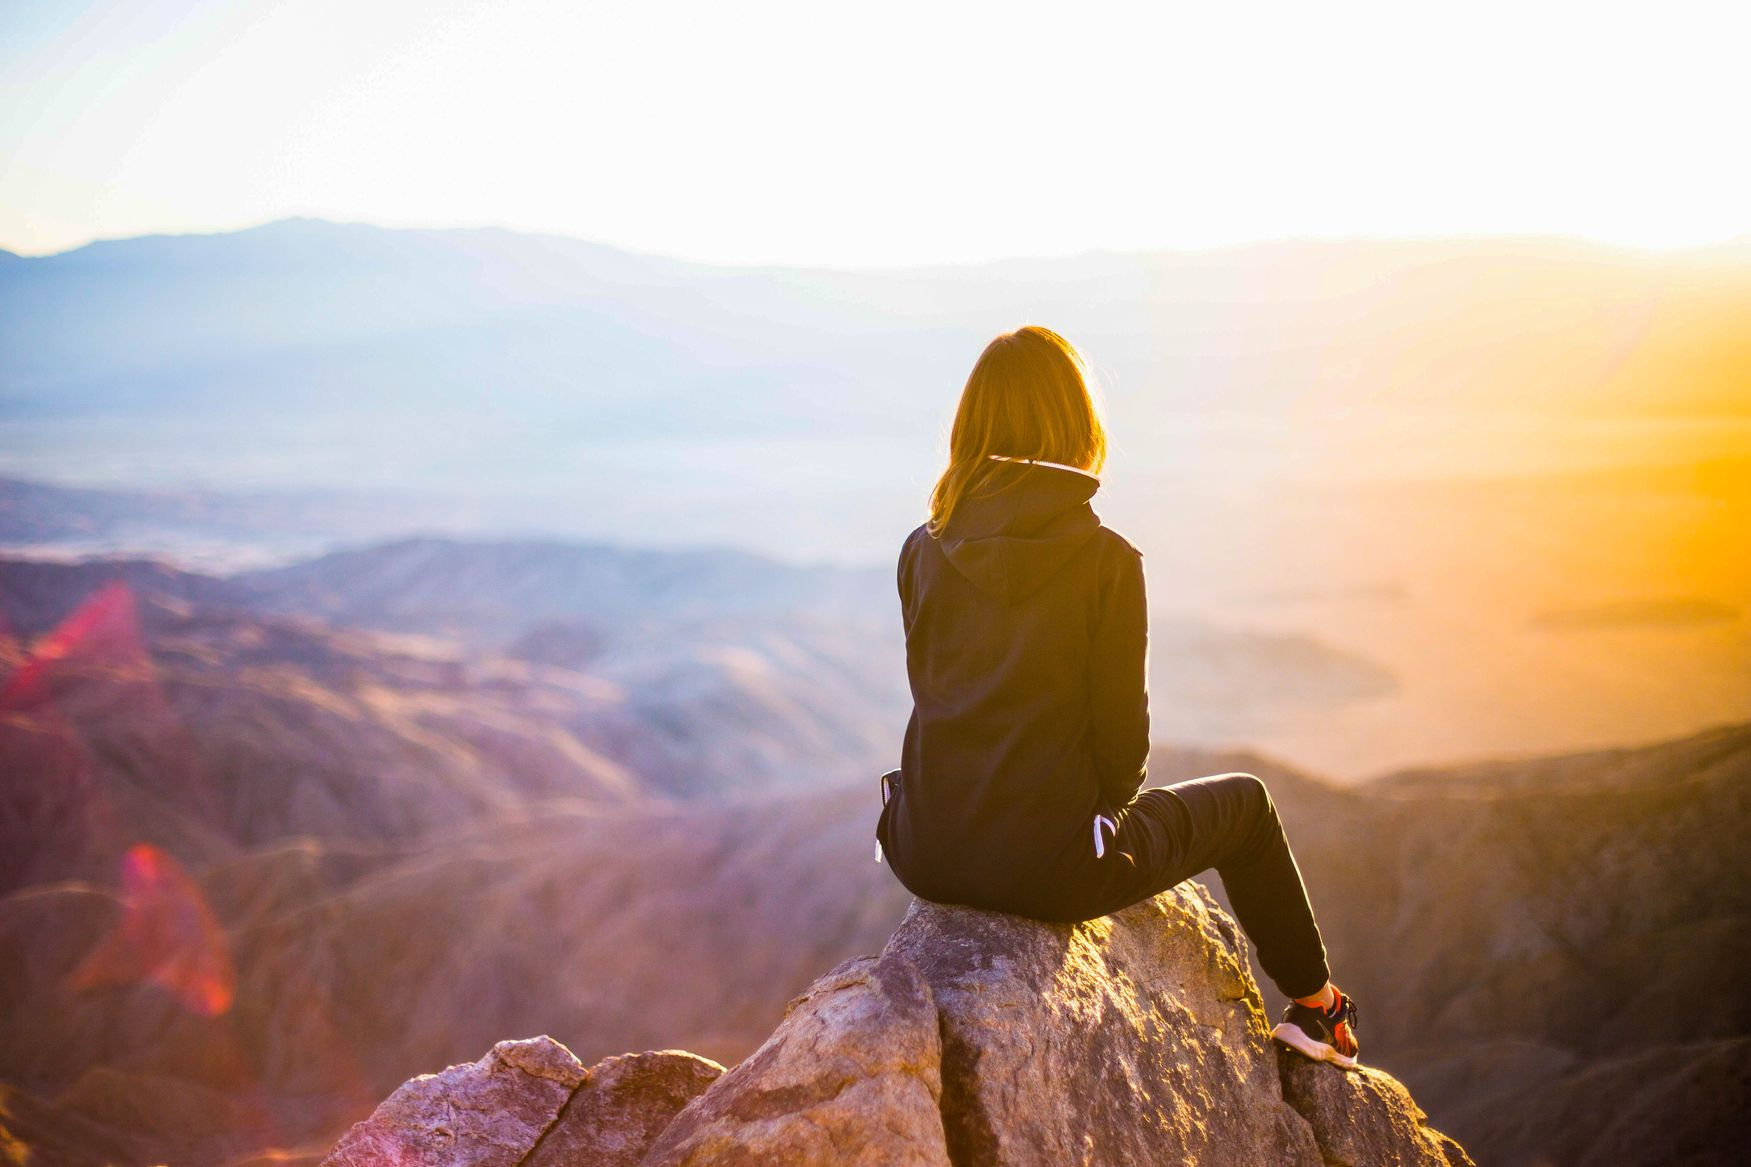 Woman sitting on a rock overlooking mountains